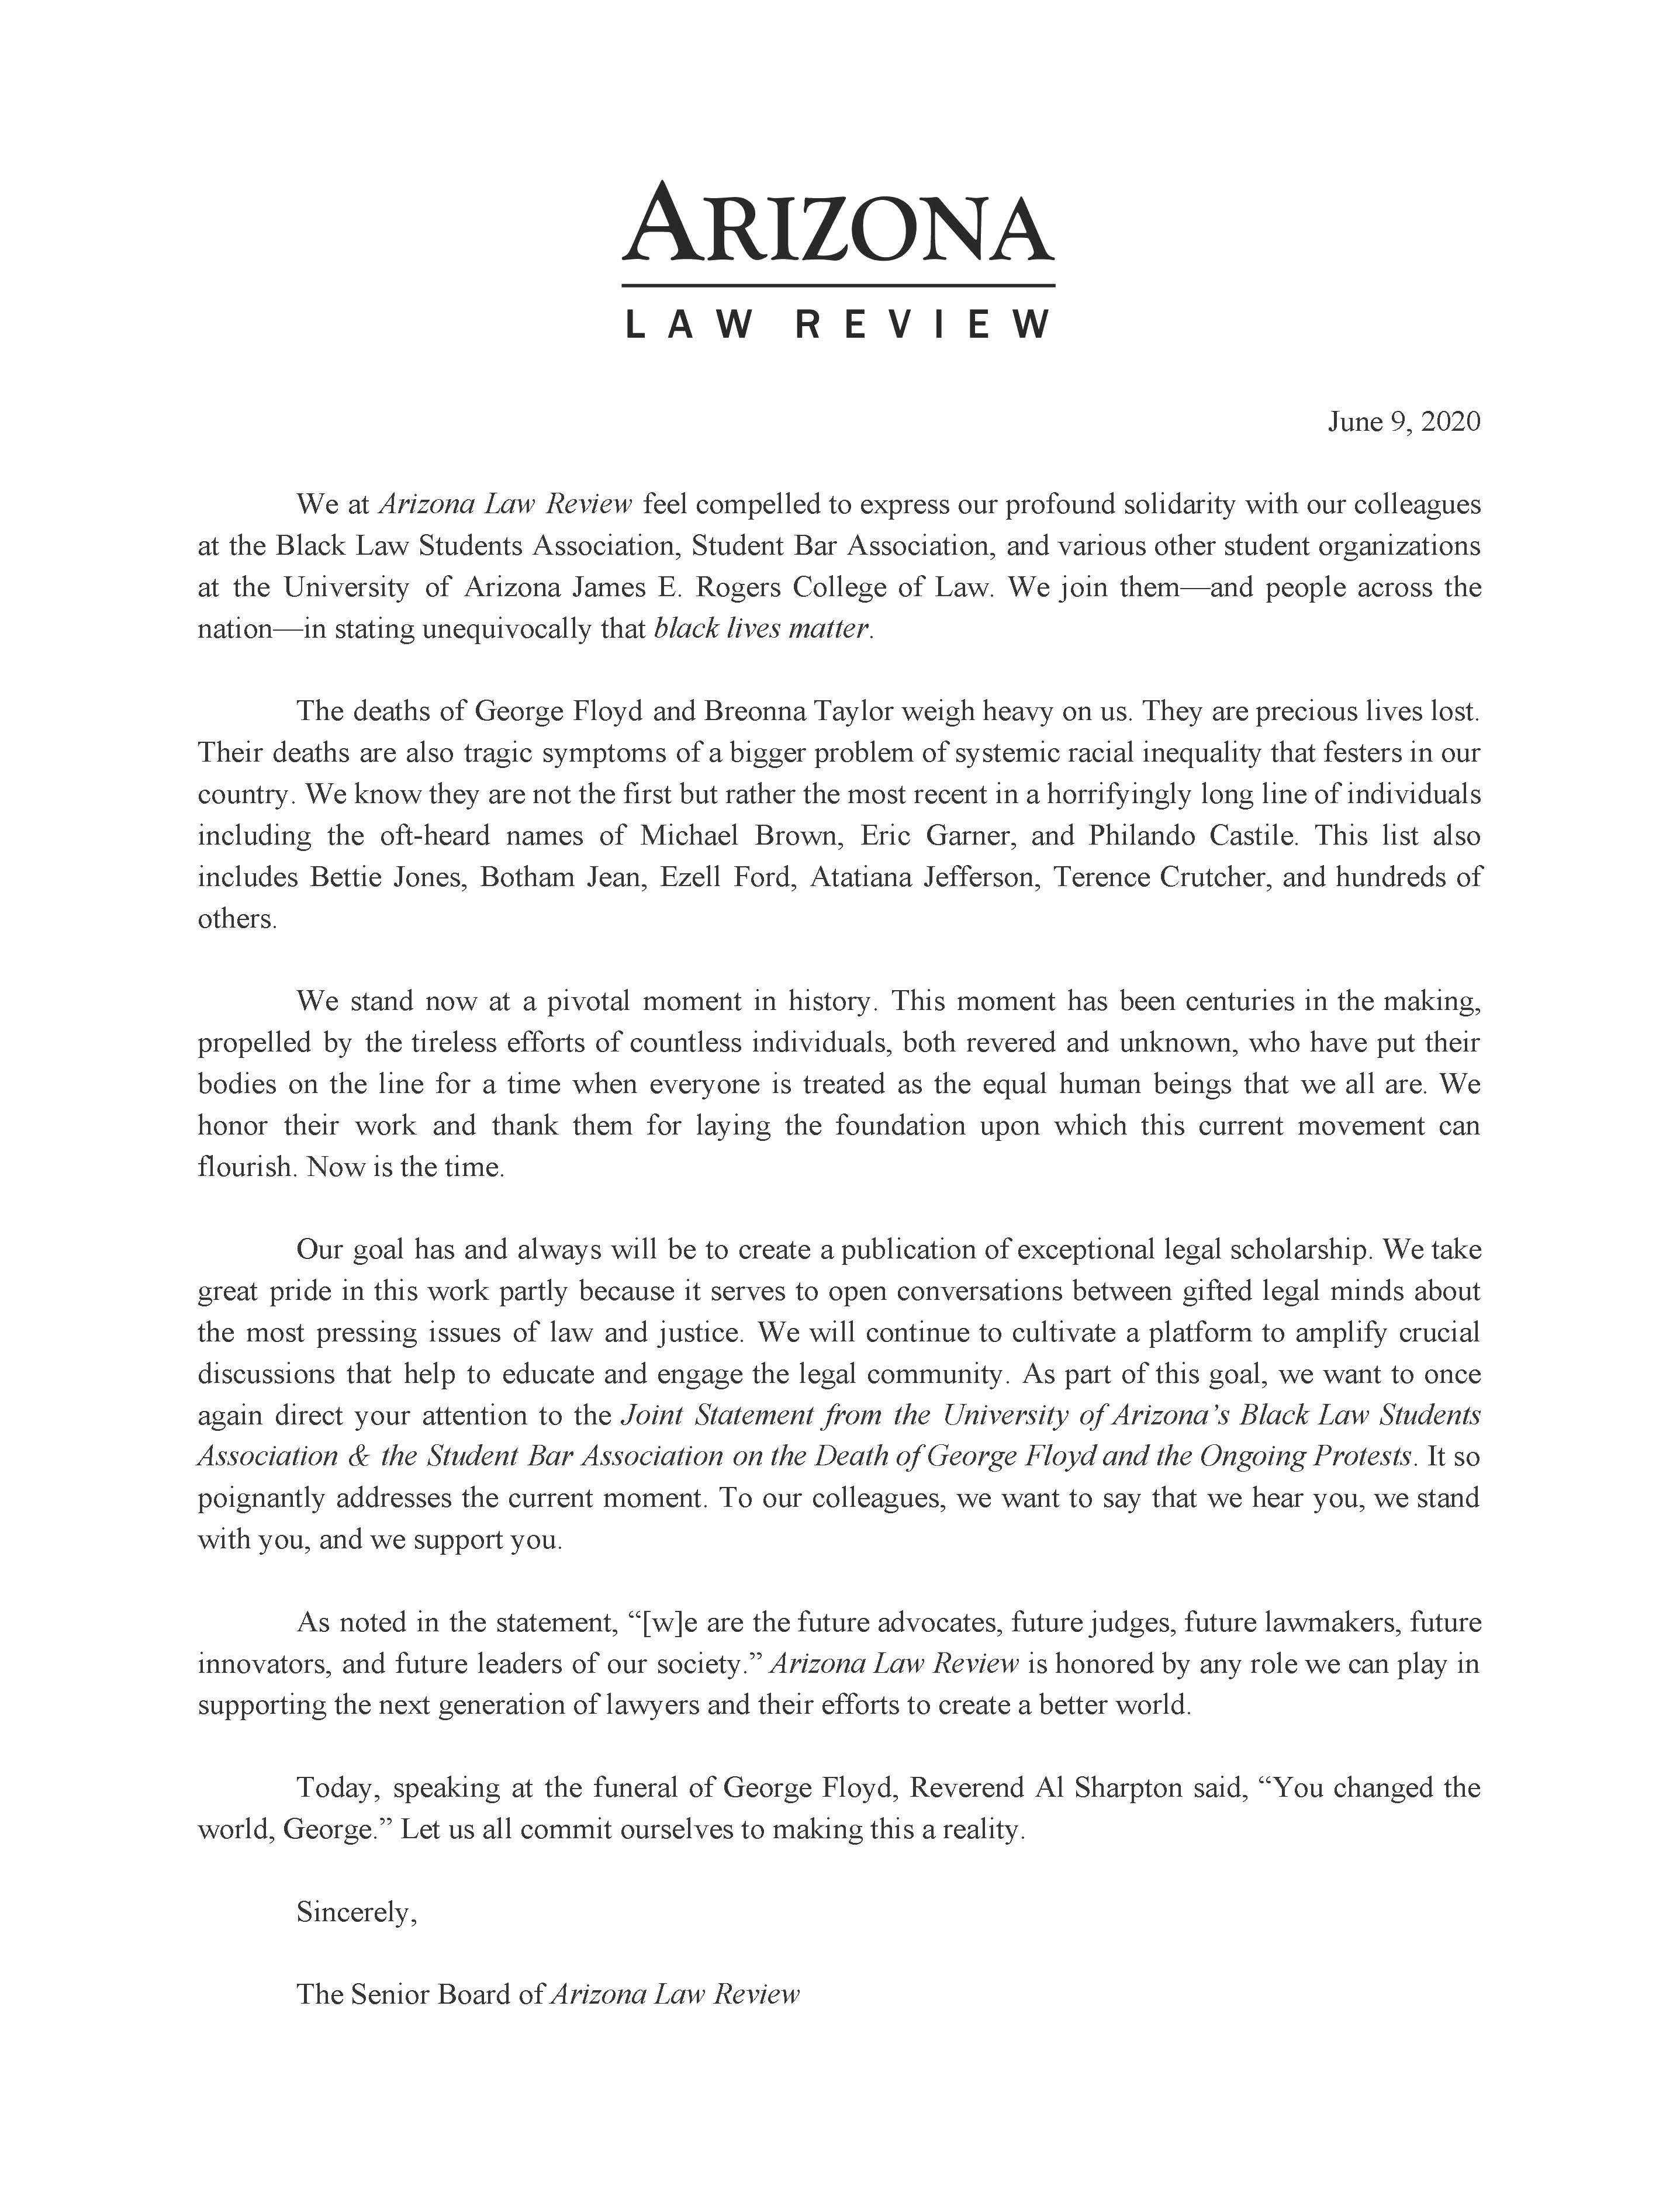 Arizona Law Review Statement of Solidarity